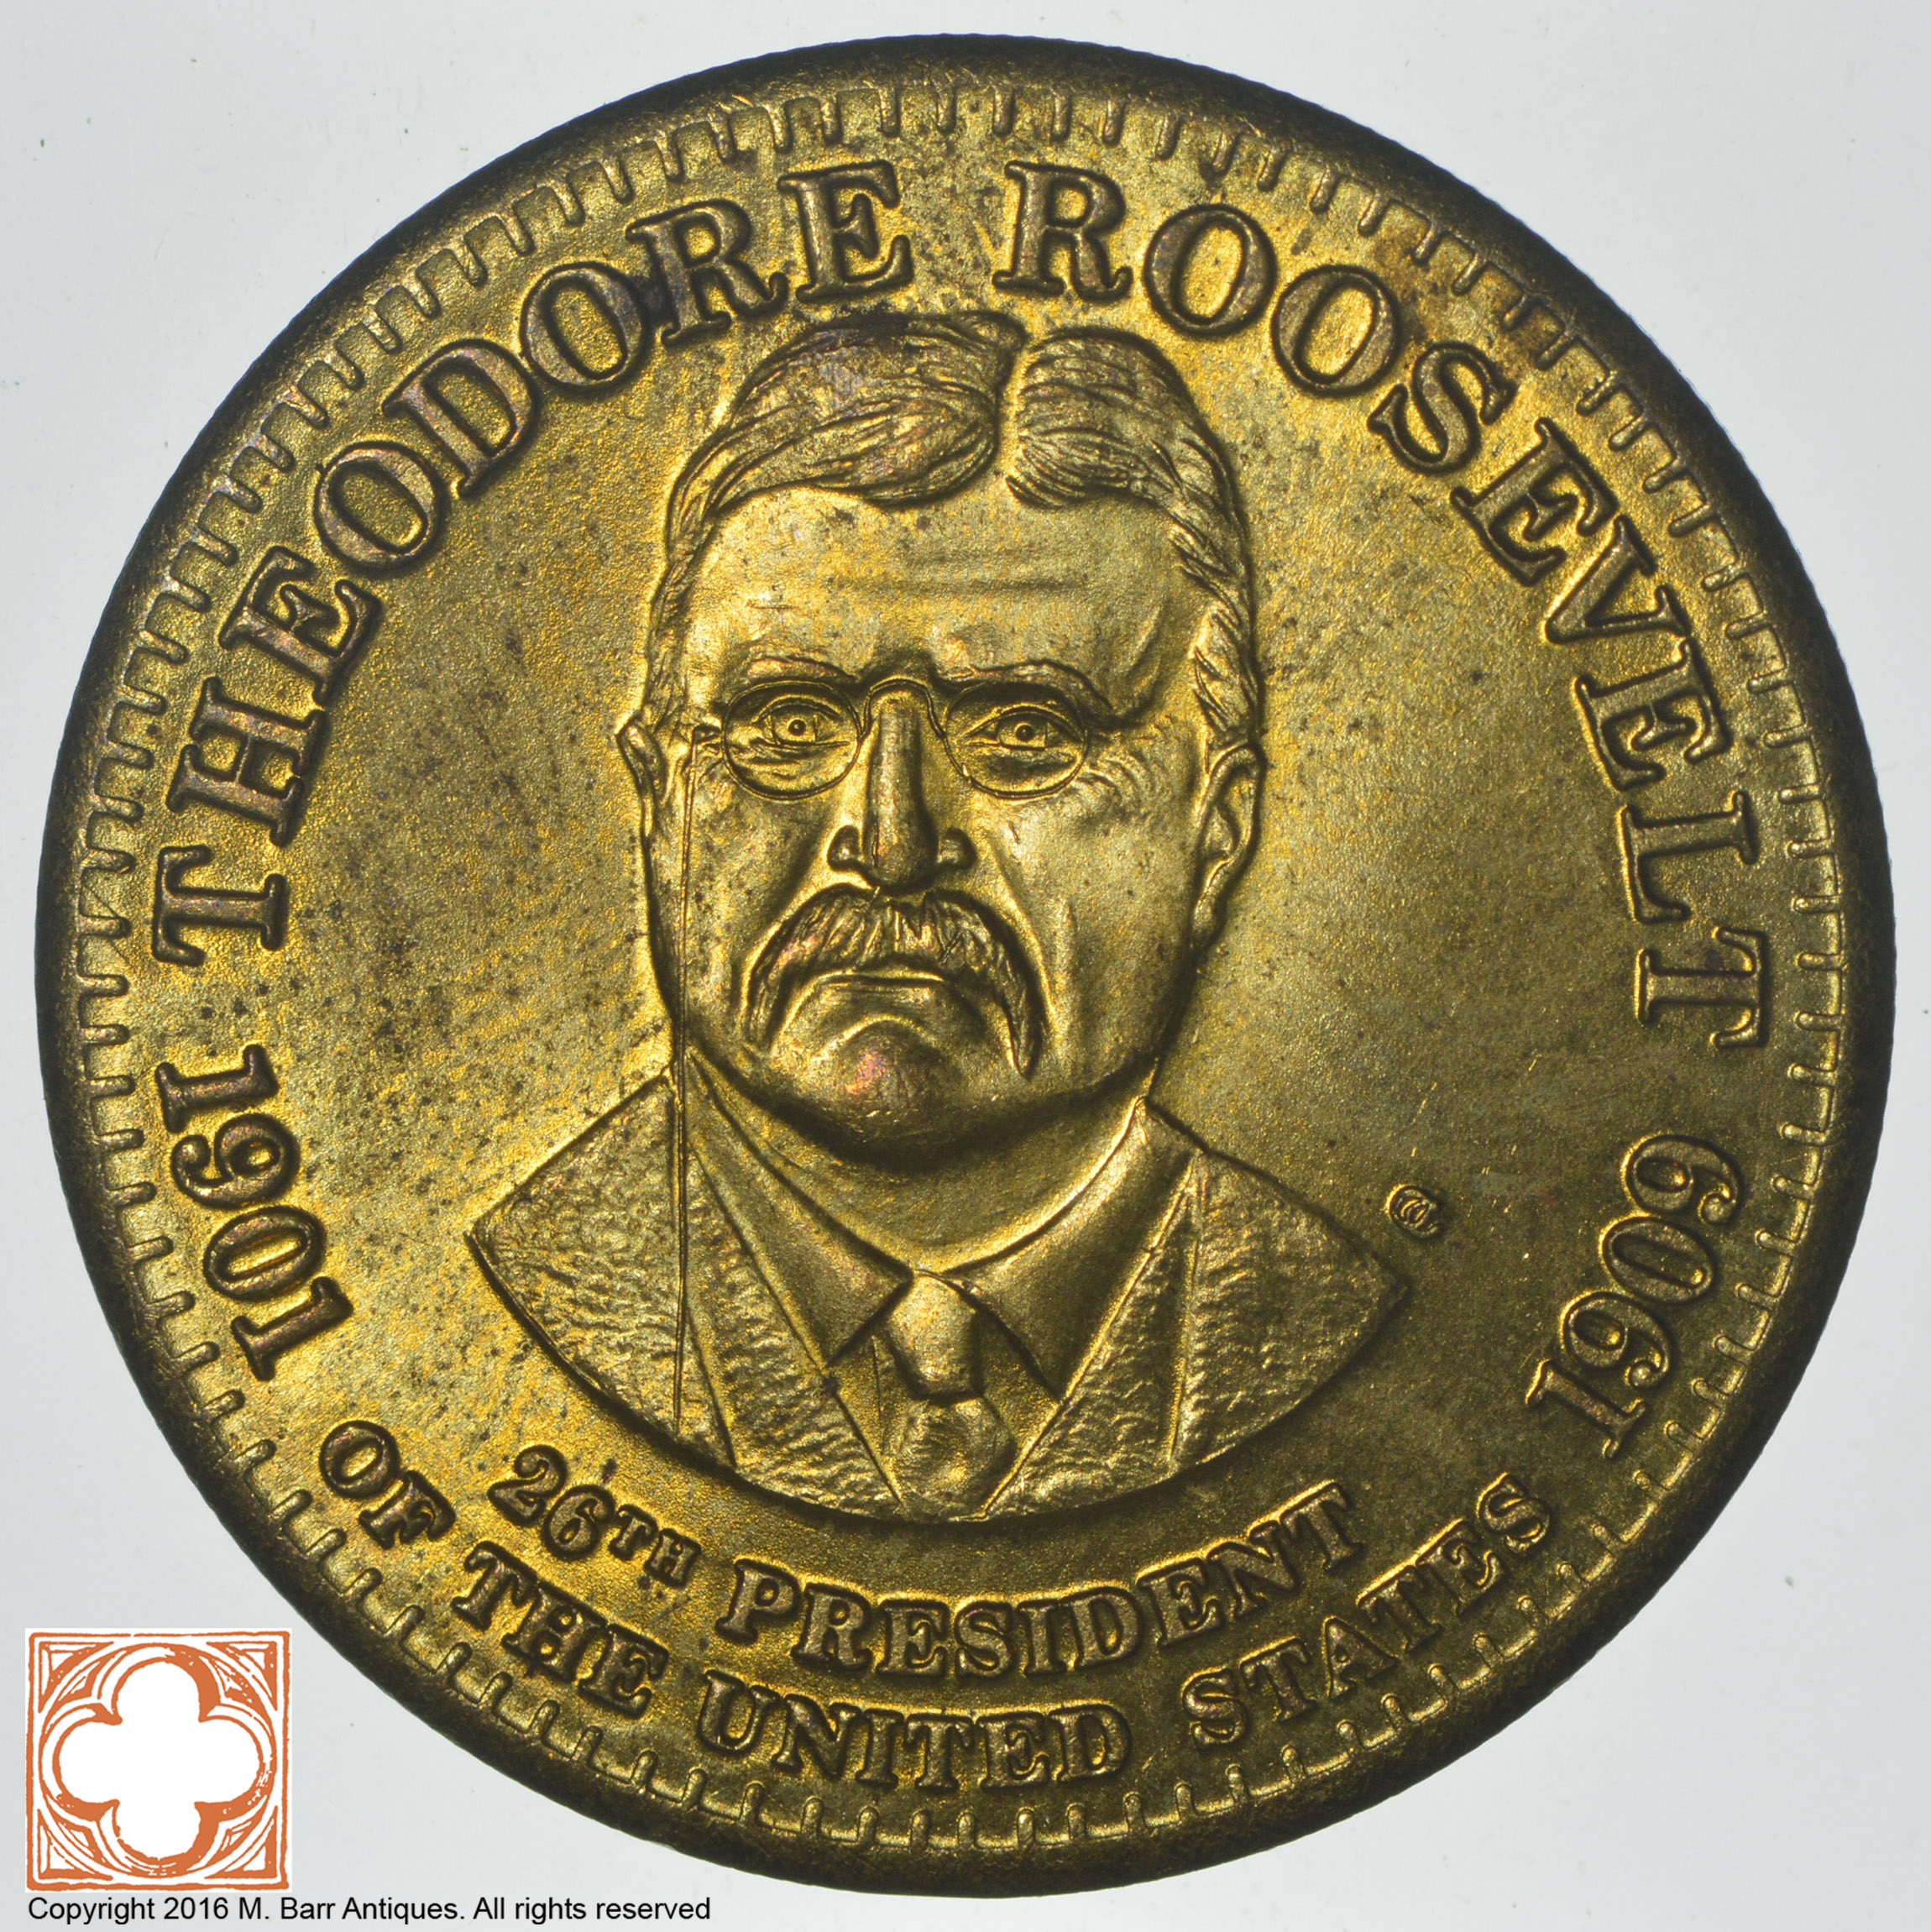 Theodore Roosevelt 26th President Of The United